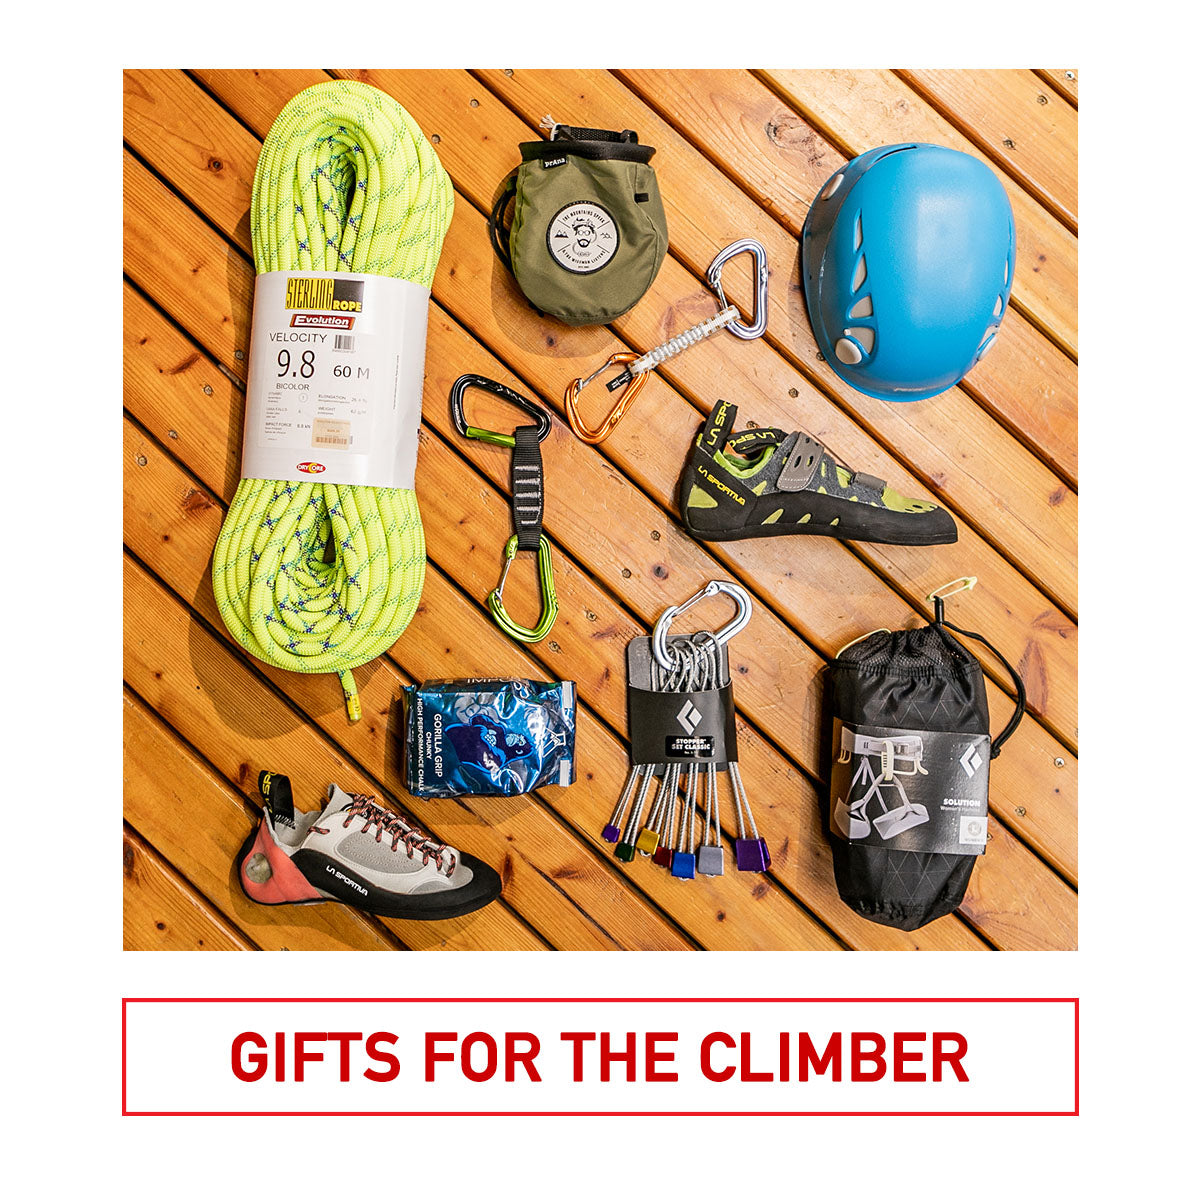 Gifts for the Climber